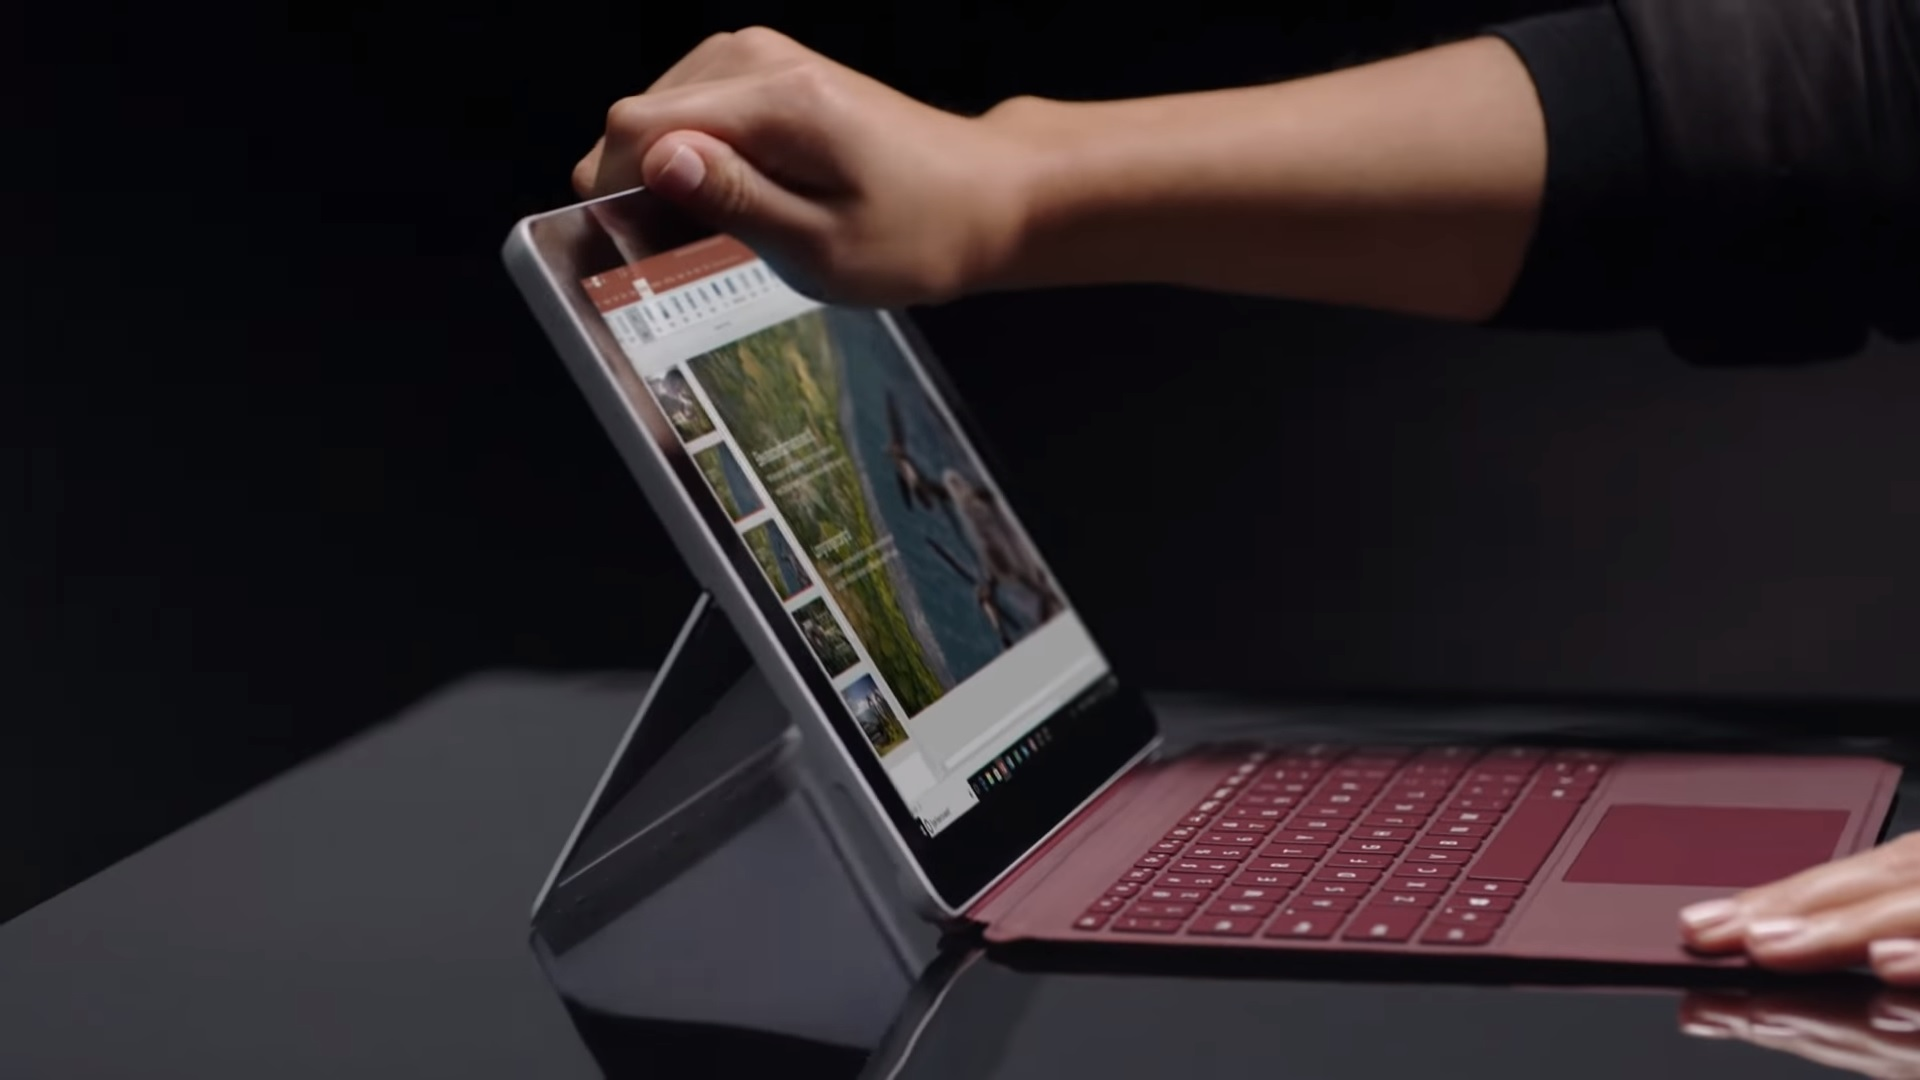 Microsoft has announced their smallest Surface device yet, and it may finally be cheap enough for you to consider purchasing one. The Microsoft Surface Go ...